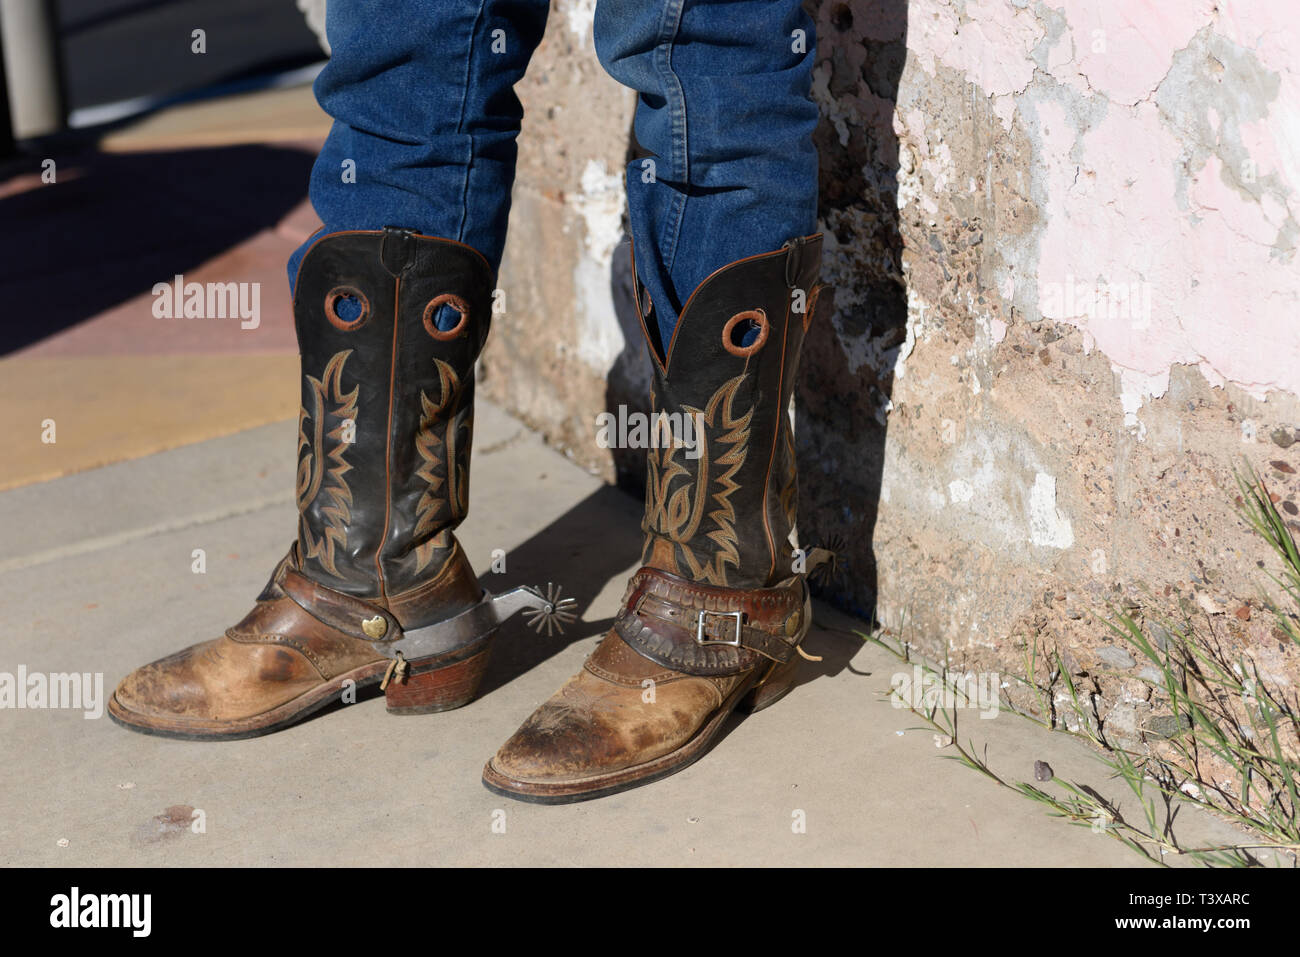 fc535b1df3b Old Cowboy Boots Stock Photos & Old Cowboy Boots Stock Images - Alamy